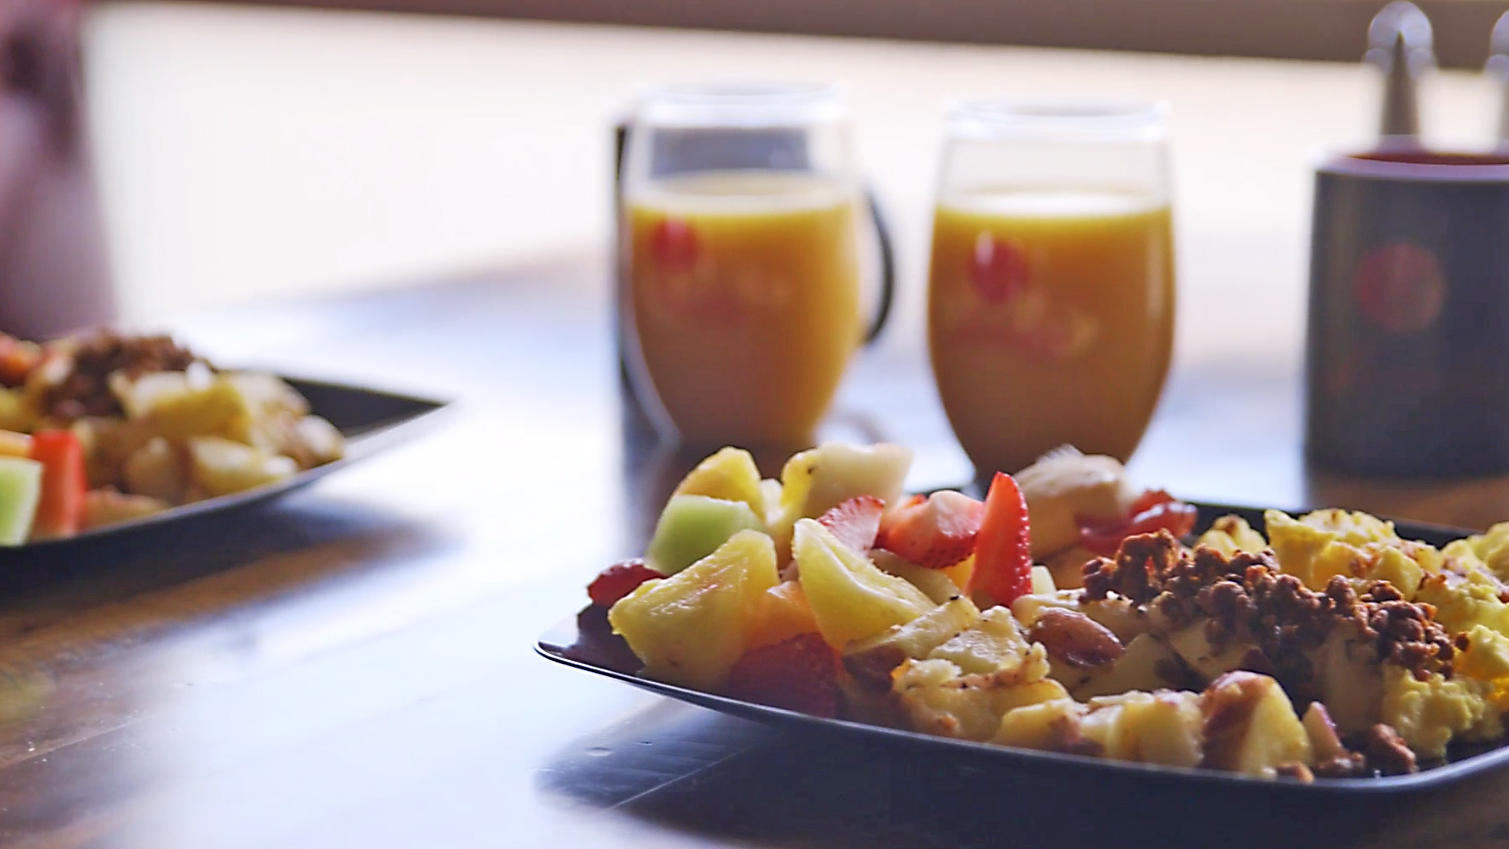 Scrambled eggs, fresh fruit and orange juice.